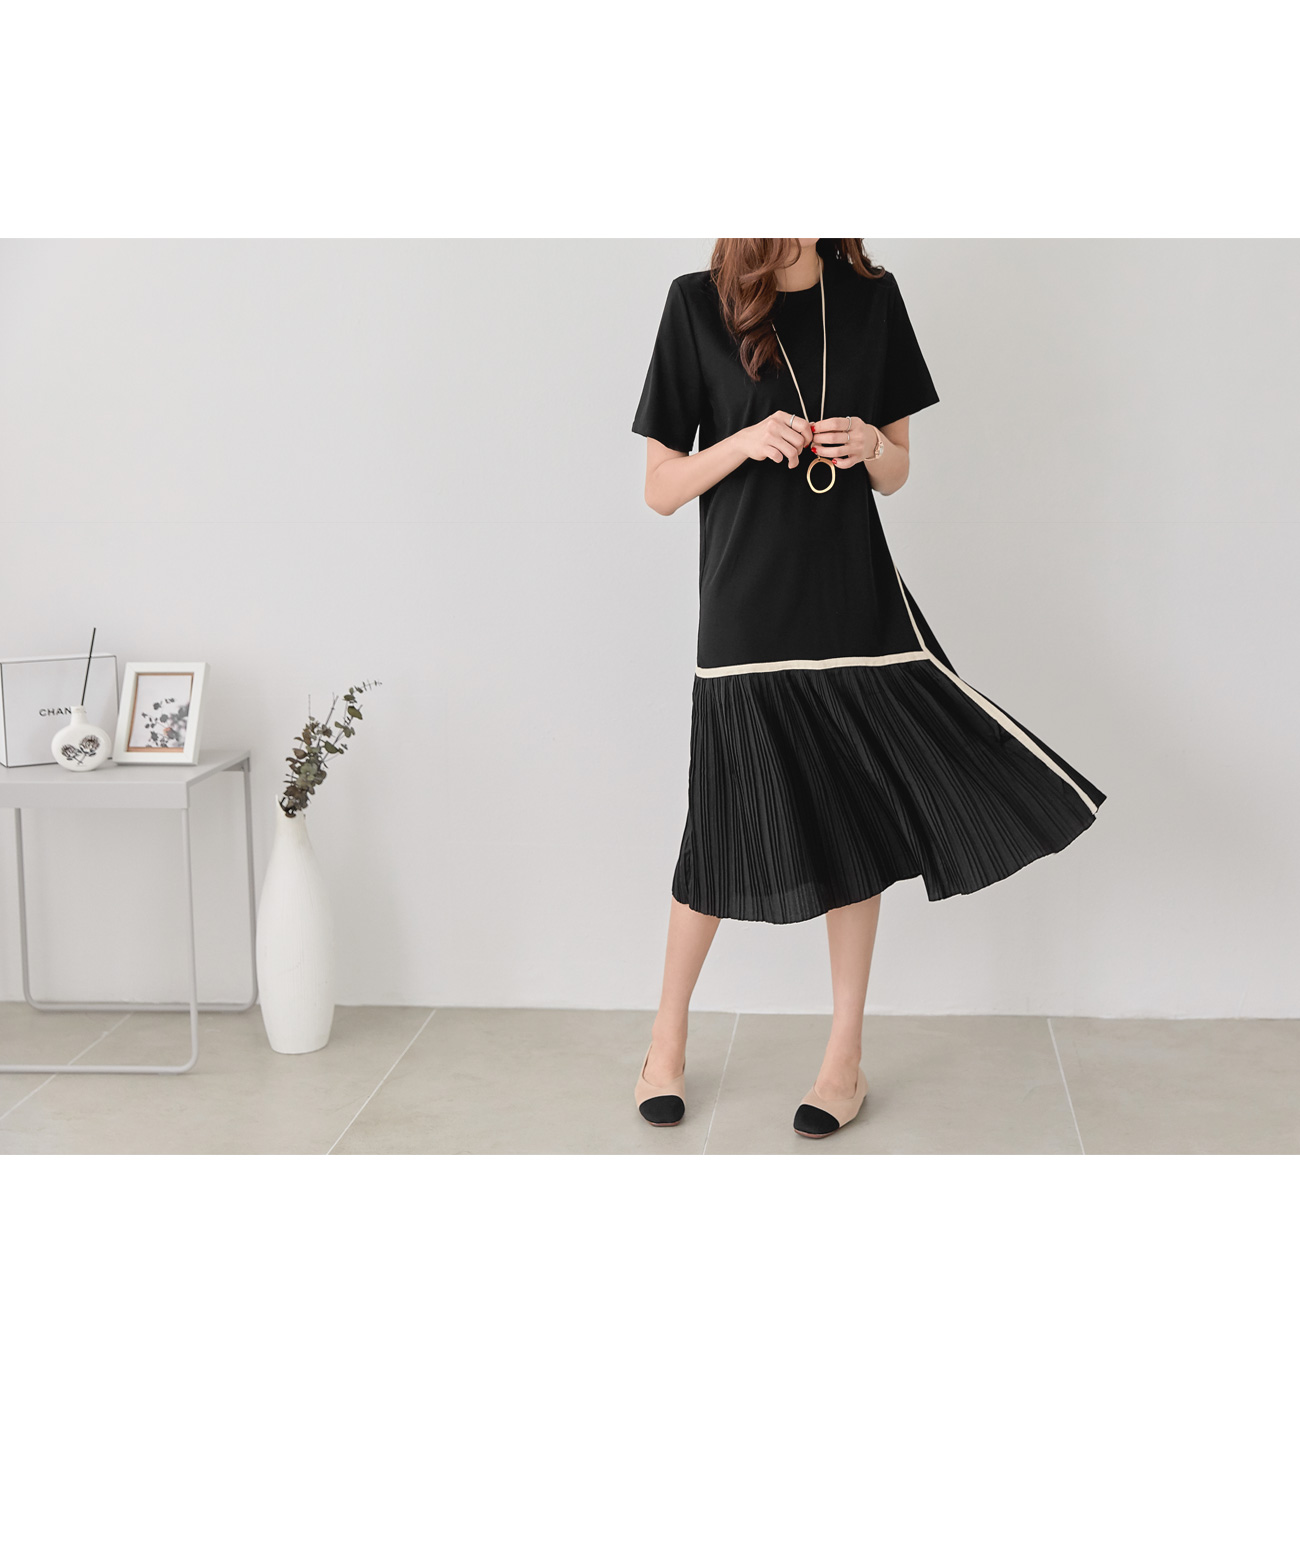 Taping unbal pleated dress #37117